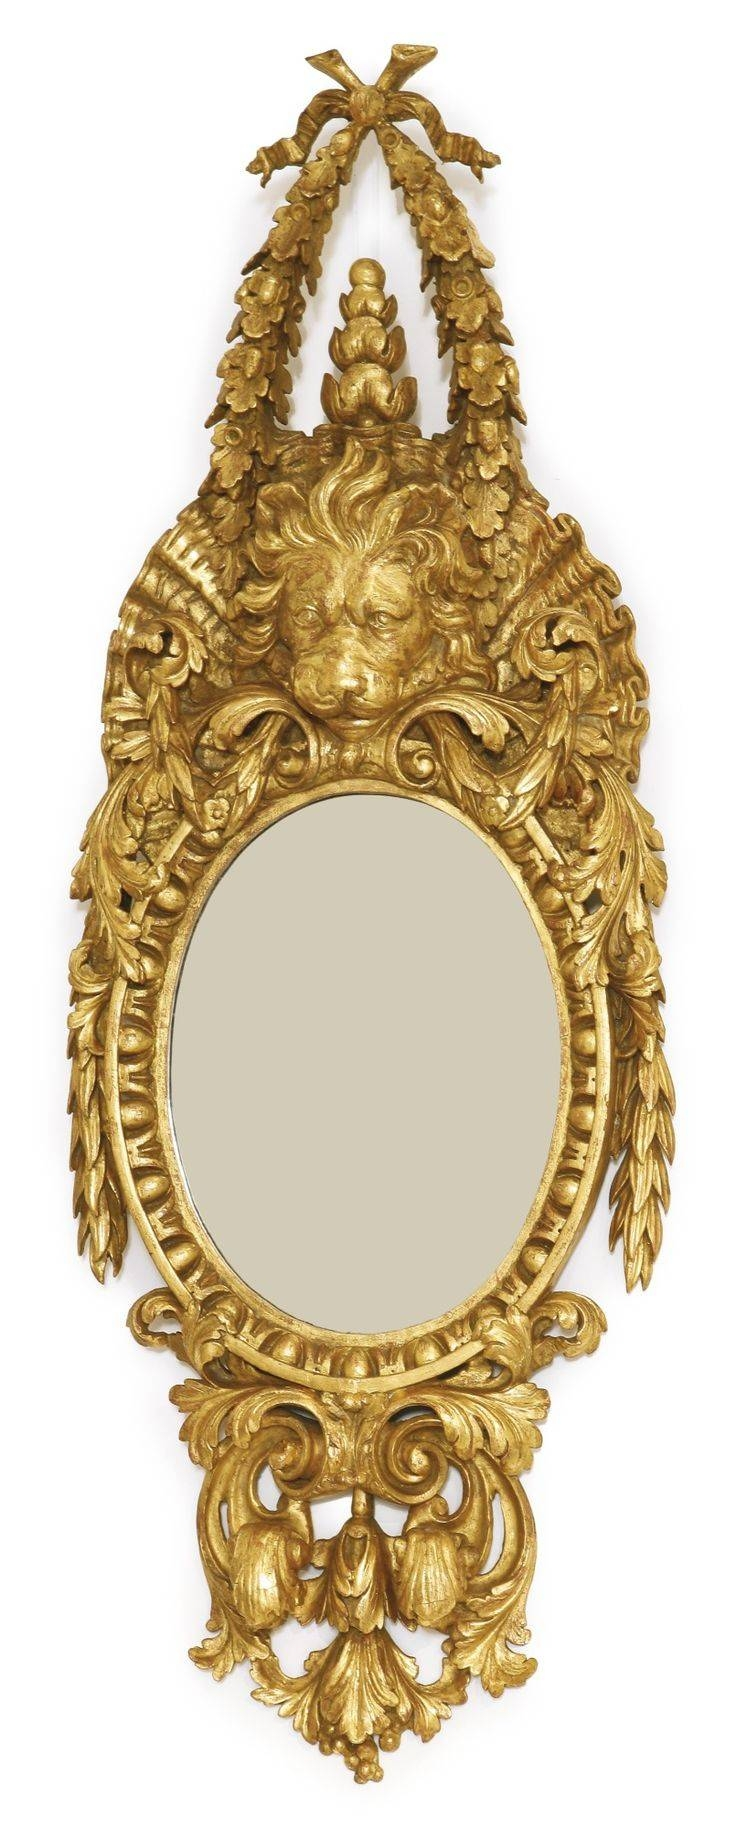 635 Best Antique Mirrors Images On Pinterest | Antique Mirrors With Antique Mirrors (View 20 of 25)